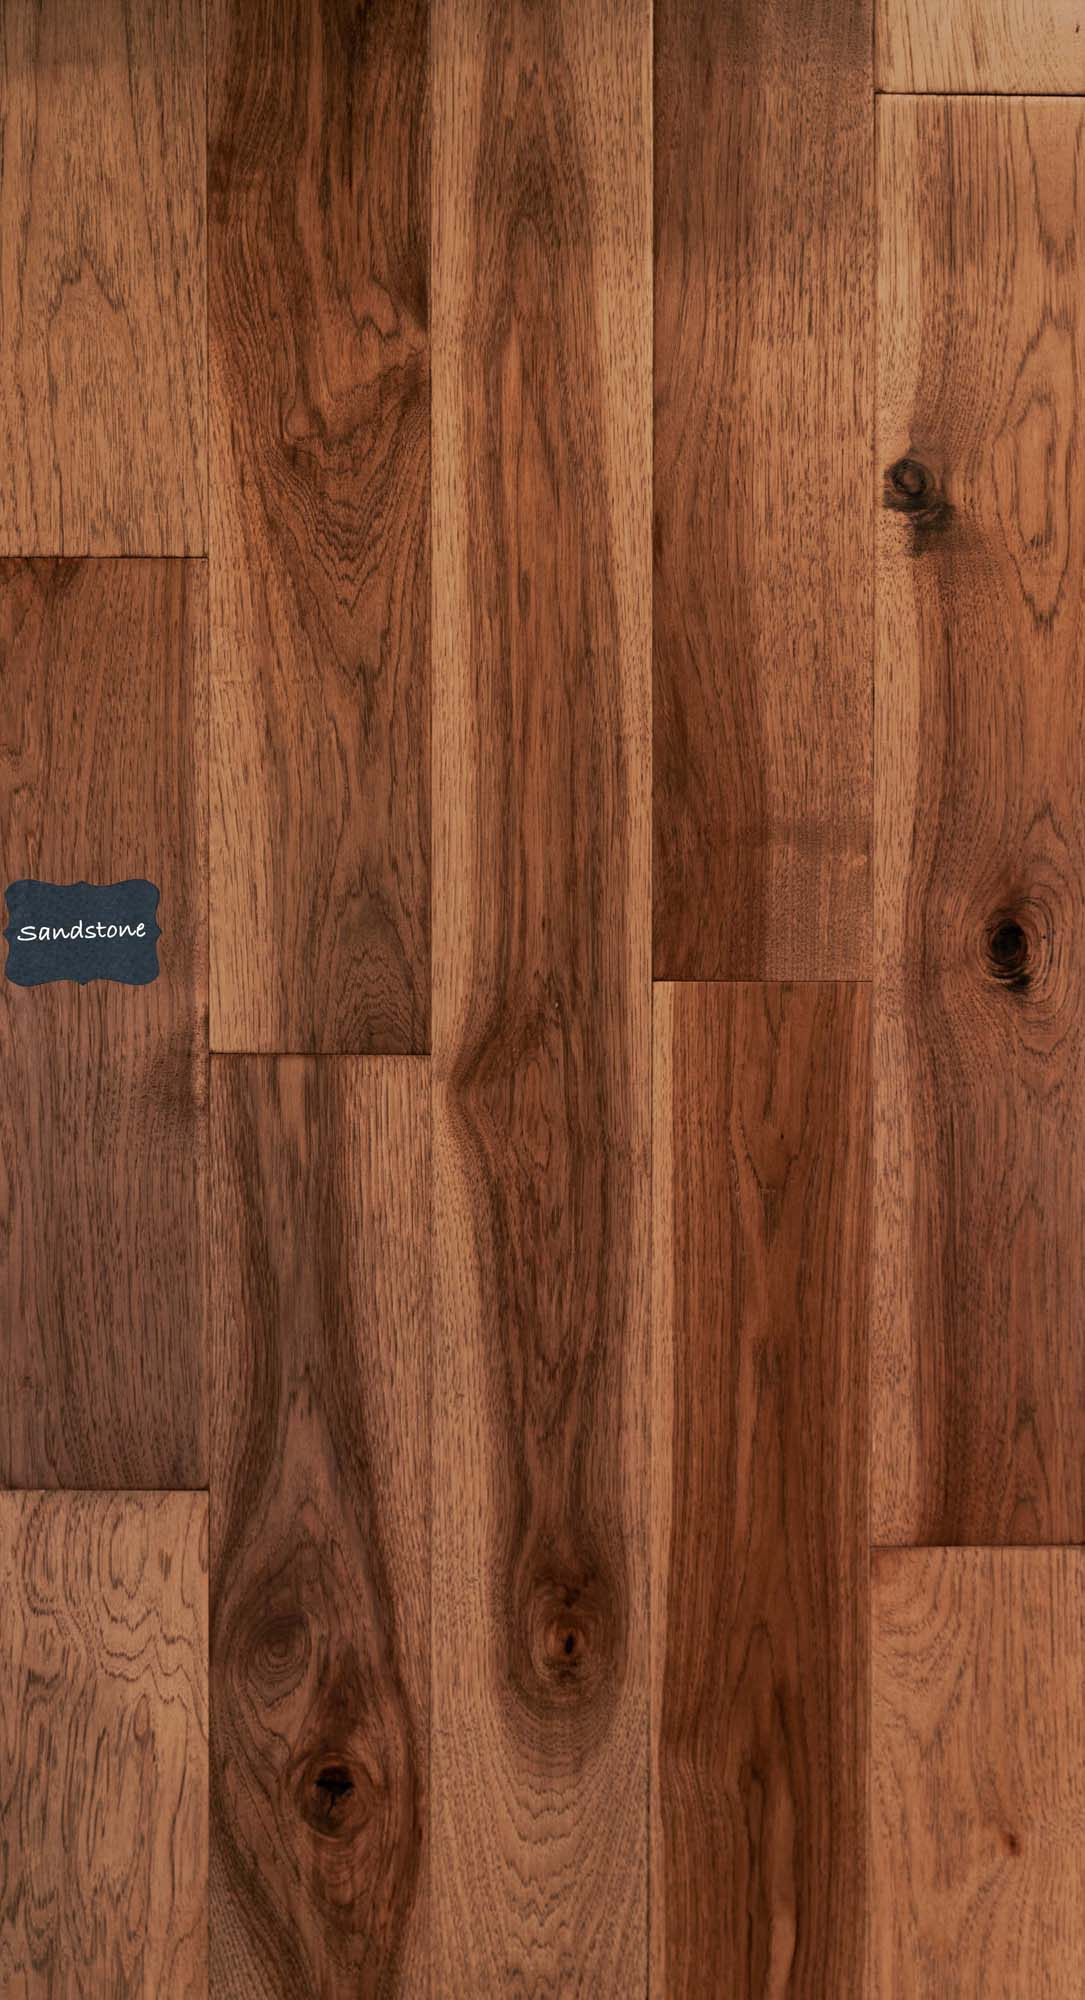 Sandstone Hickory Wood Flooring. Hickory hardwood Flooring is an amazingly durable and classic looking wood flooring option